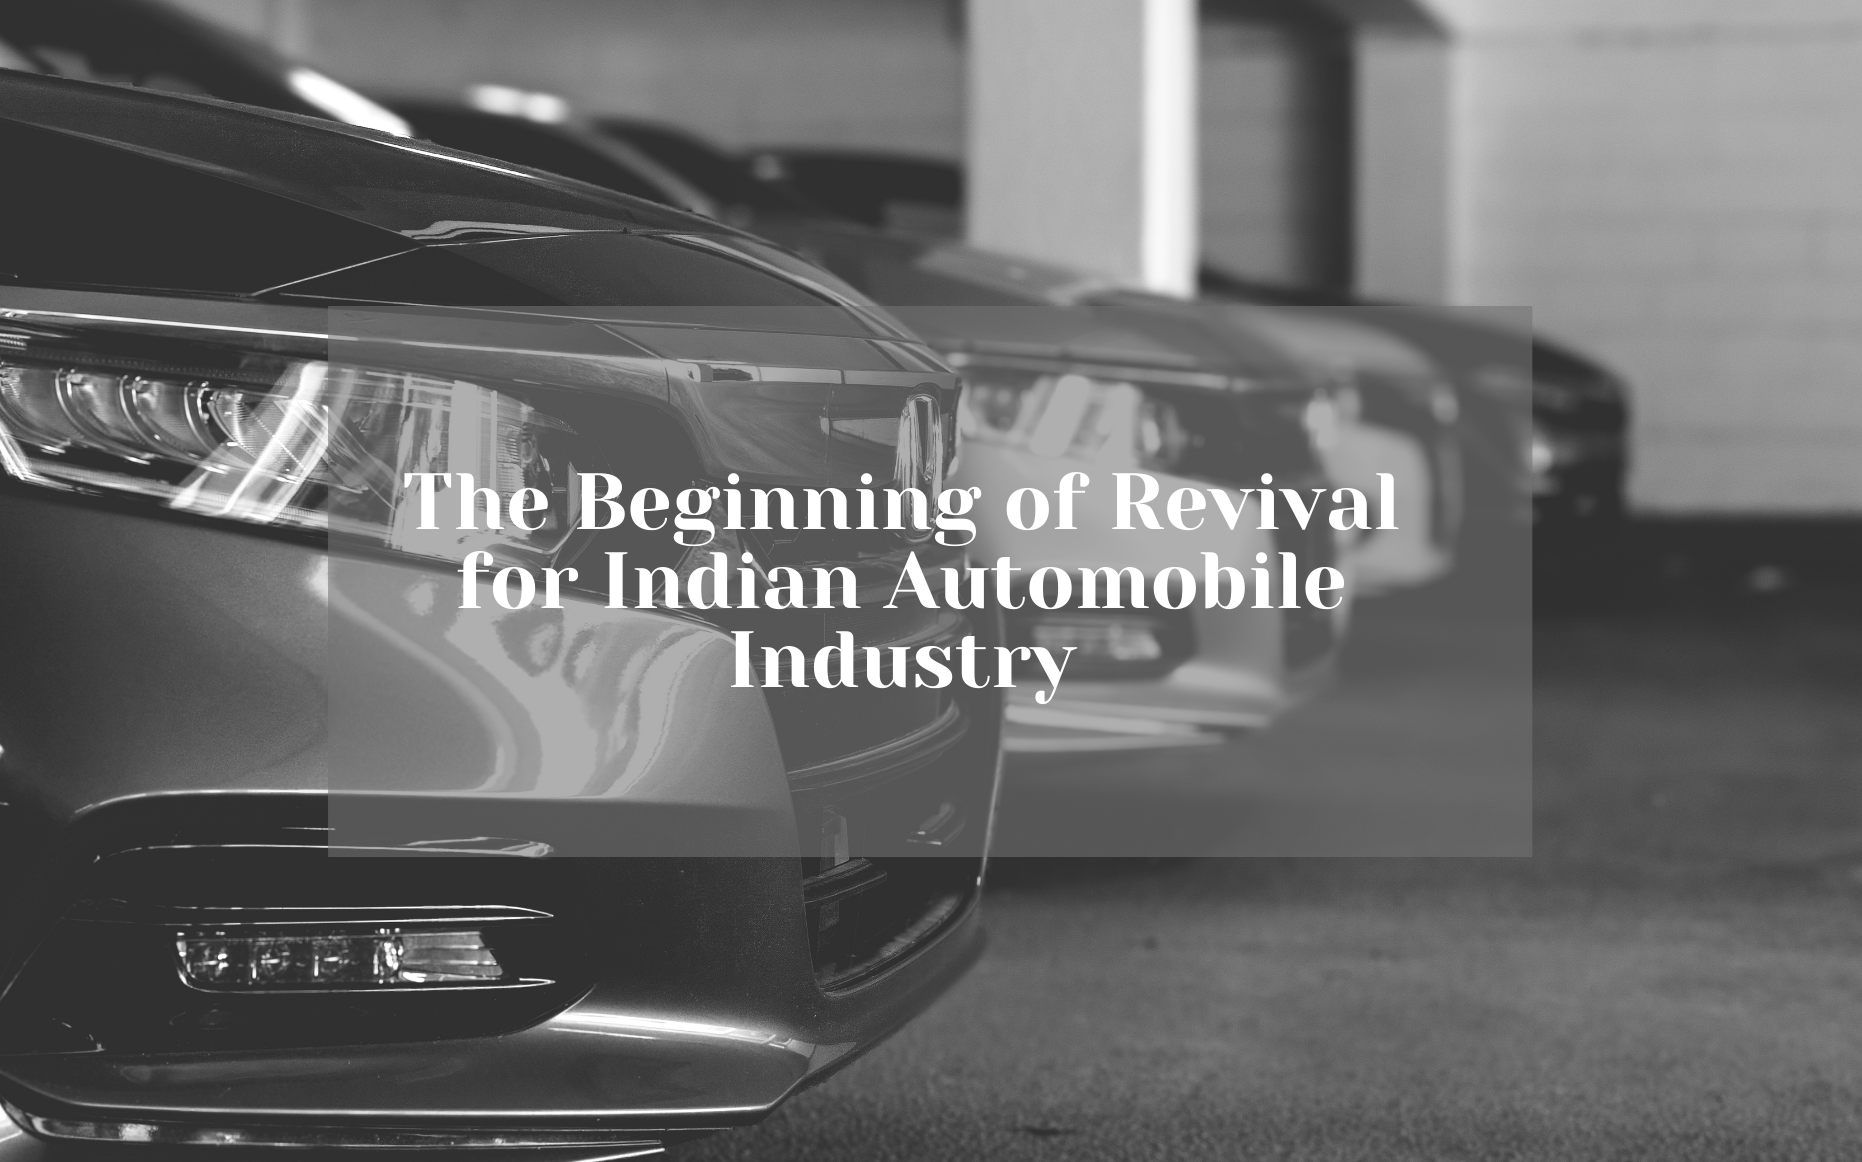 Indian Automobile Industry-The Beginning of Revival